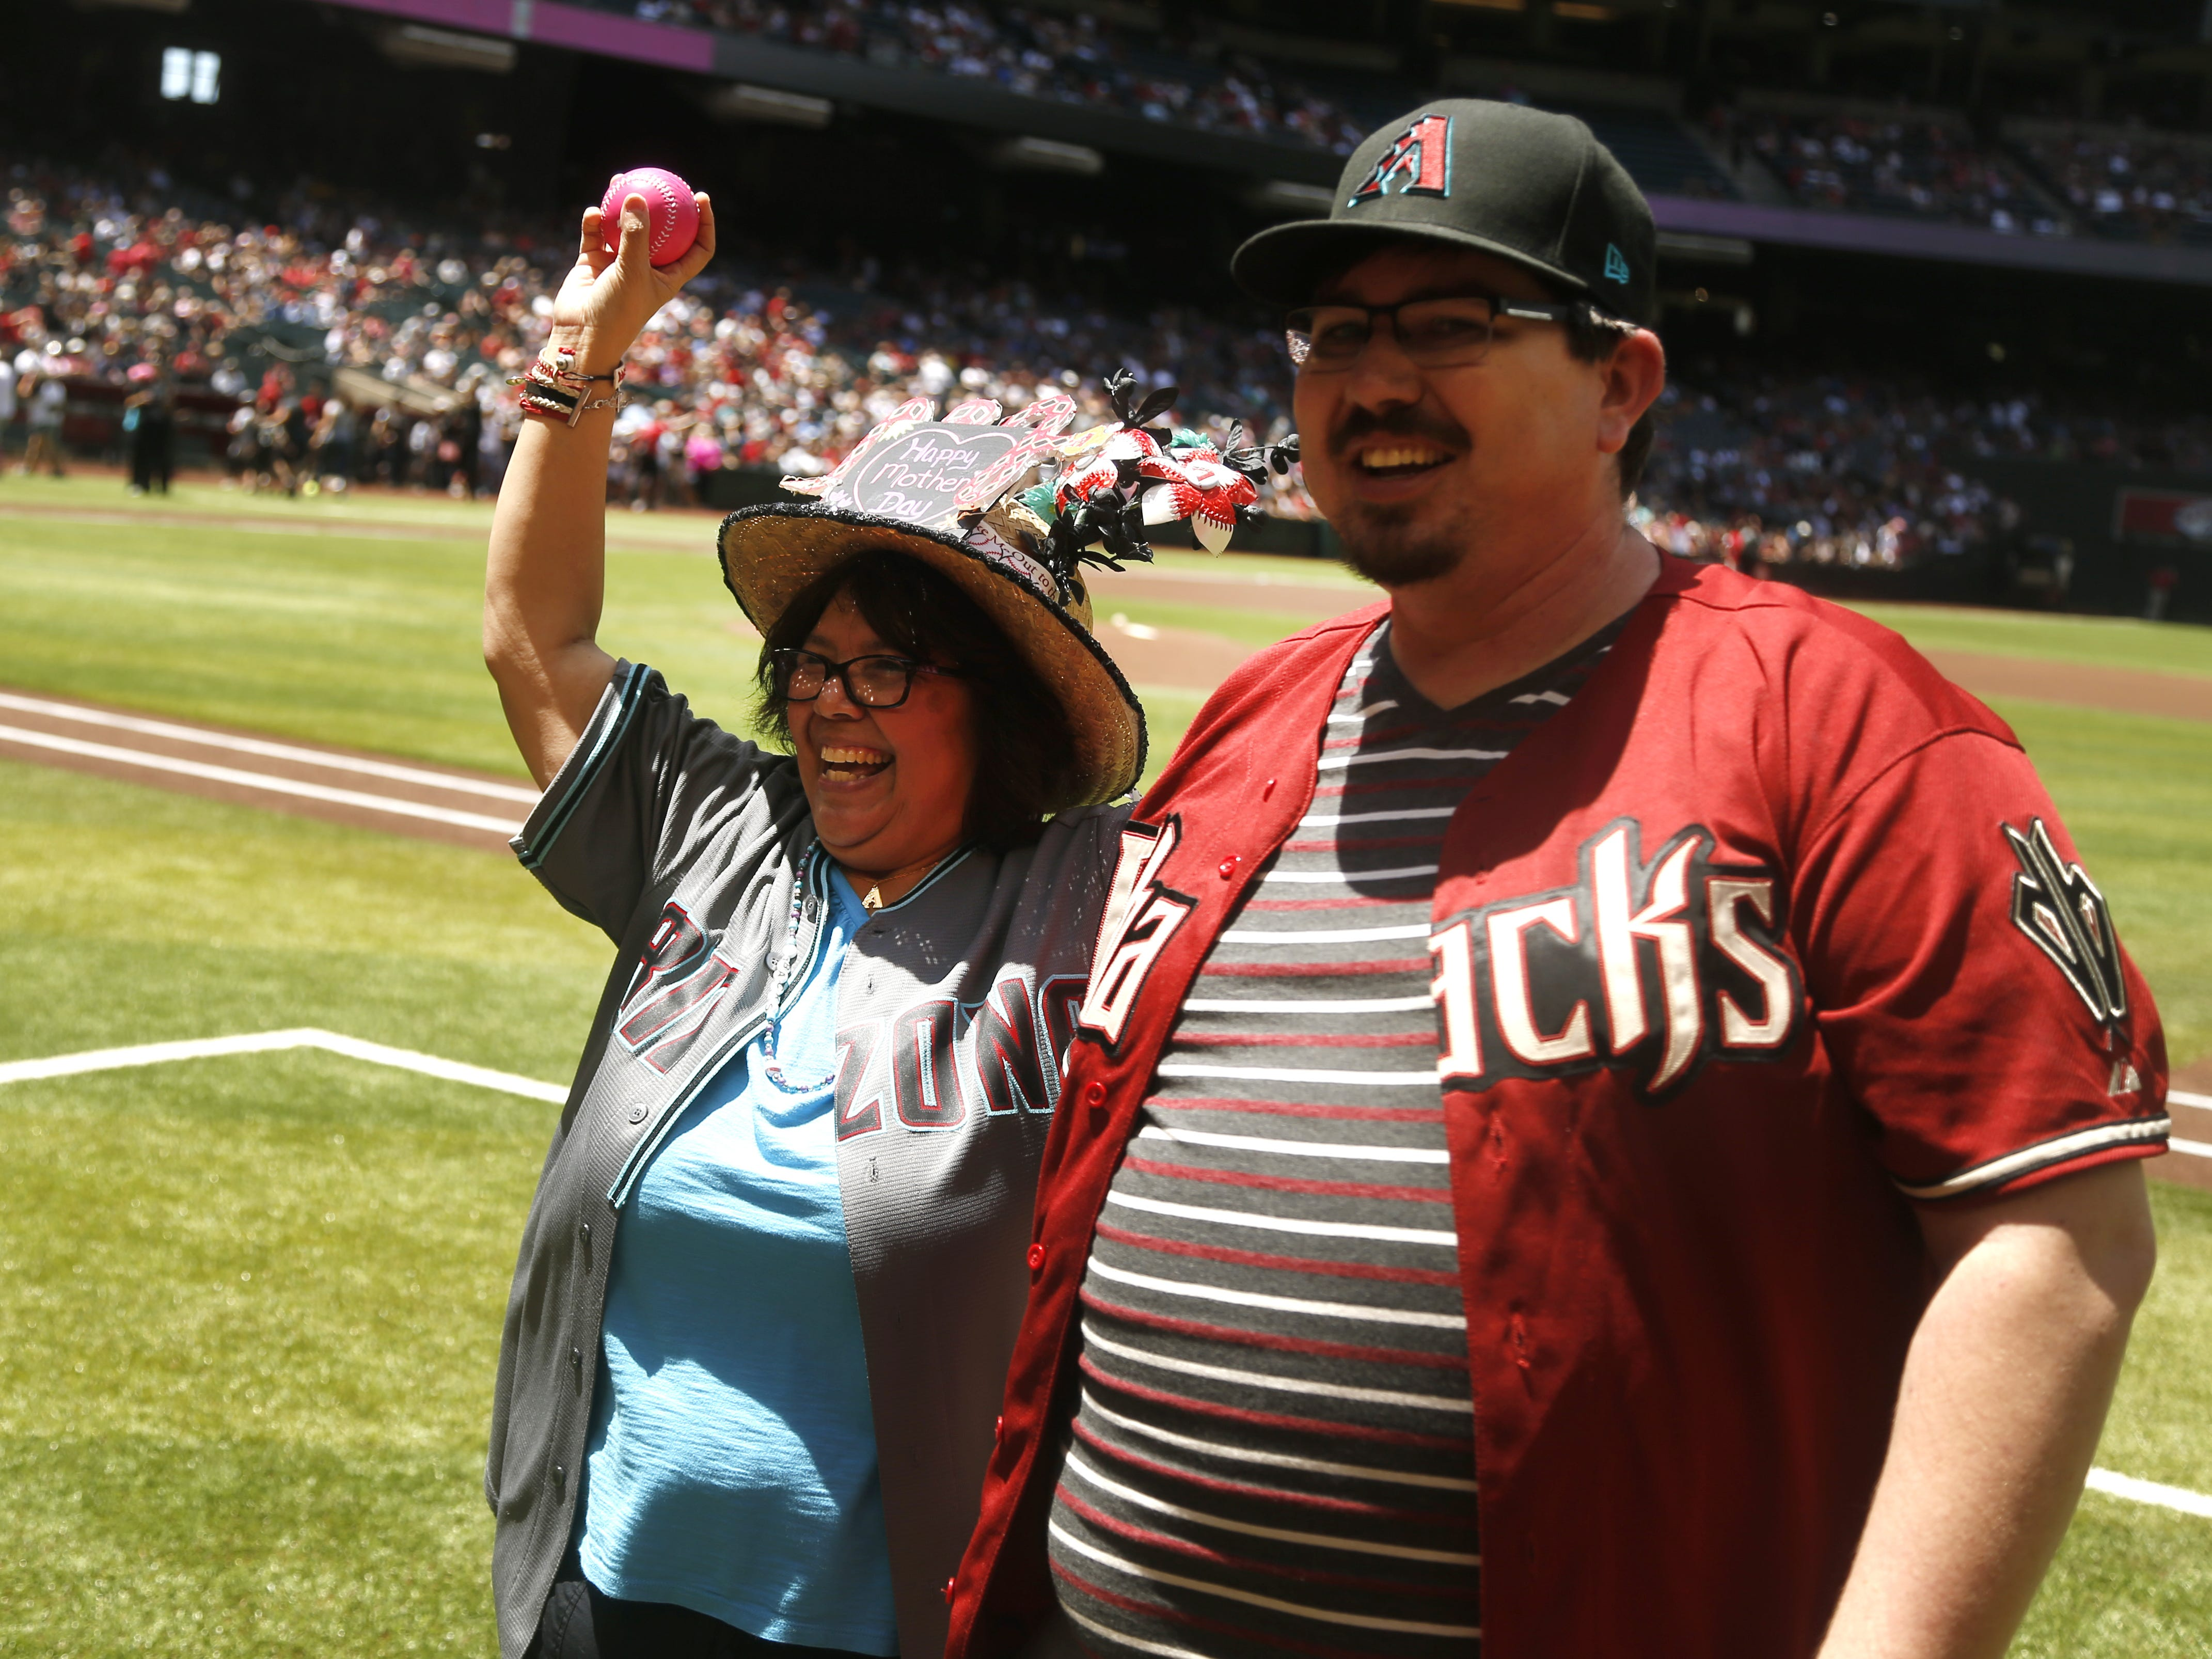 """Melissa Boesen celebrates with her son Chris Boesen after throwing out a """"first pitch"""" with other mom's on Mother's Day before a Diamondbacks game against the Braves at Chase Field in Phoenix, Ariz. on May 12, 2019."""